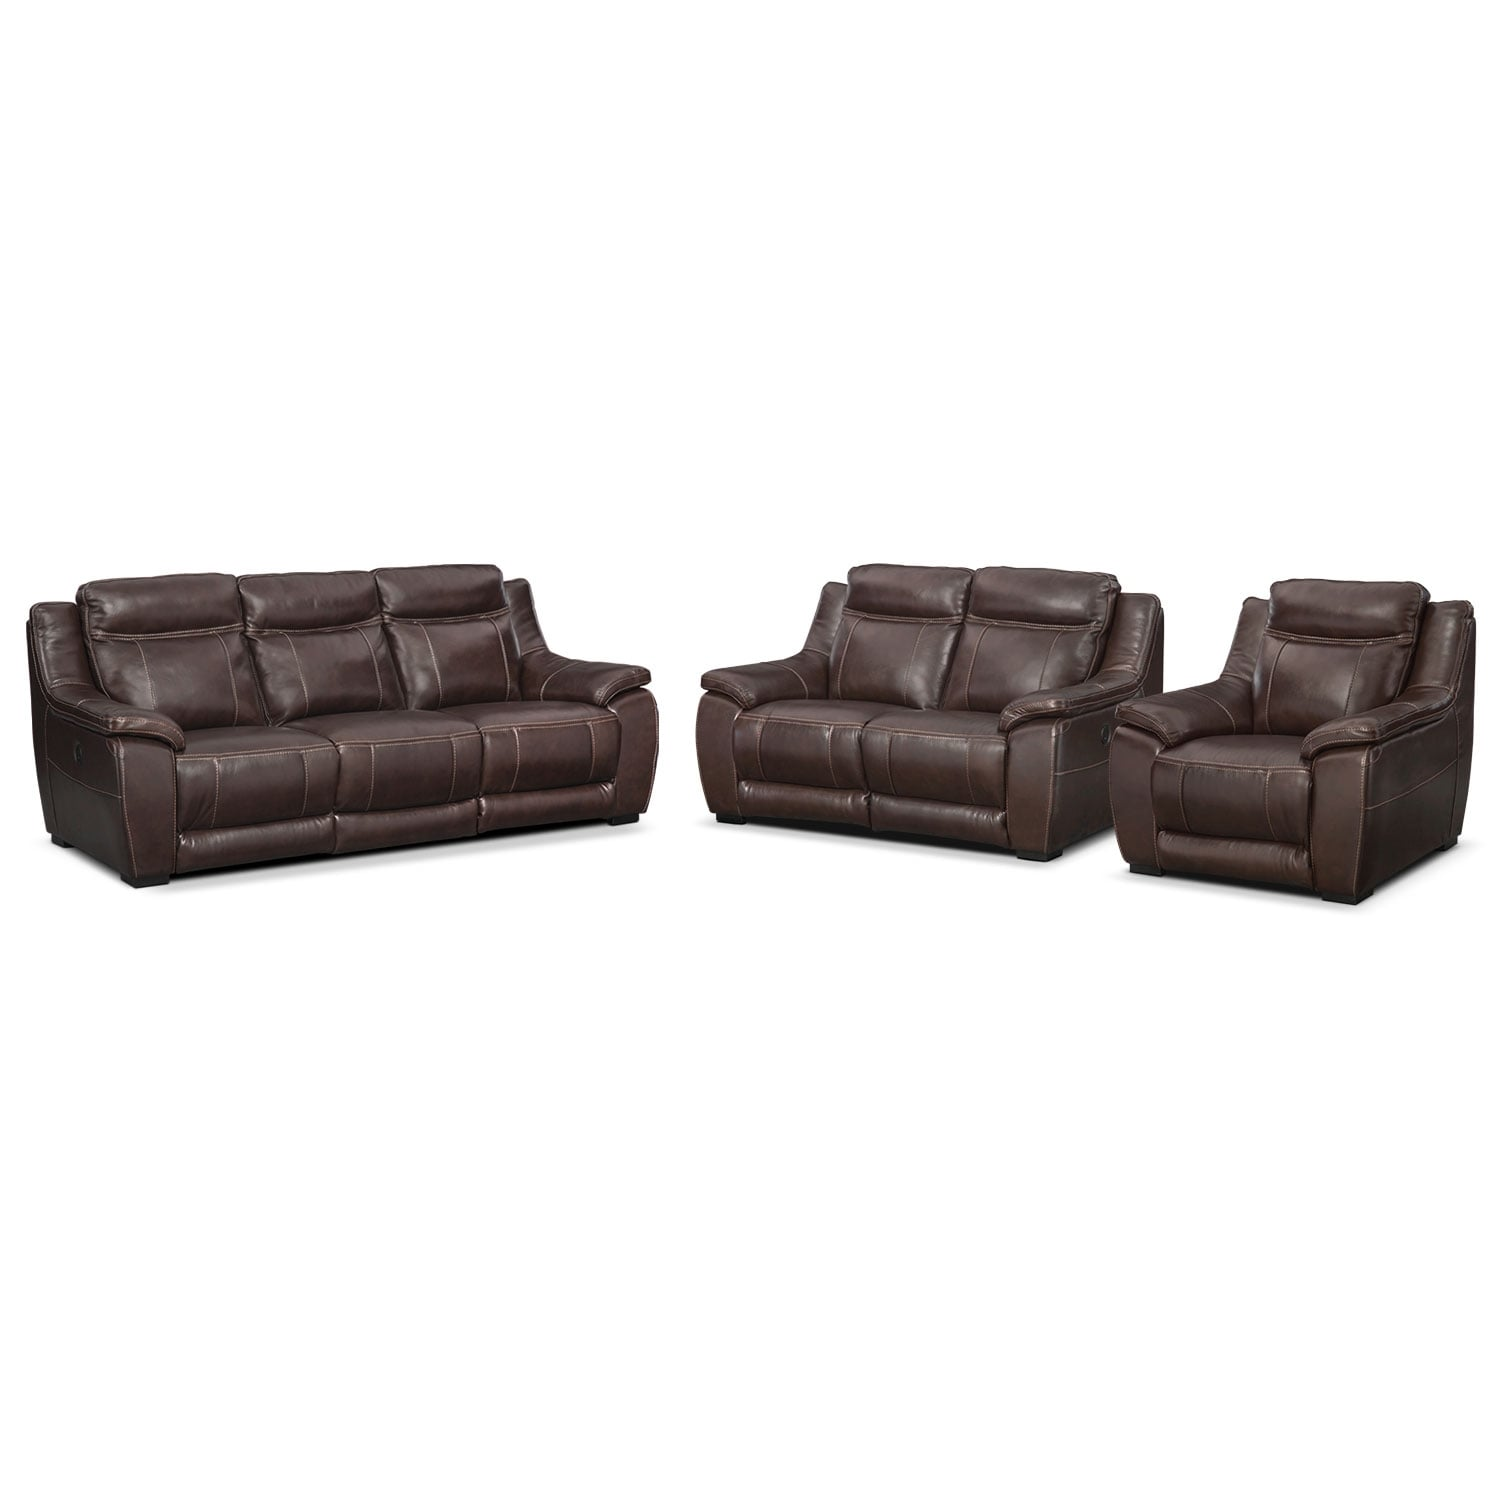 Lido Power Reclining Sofa Reclining Loveseat And Recliner Set Brown Value City Furniture